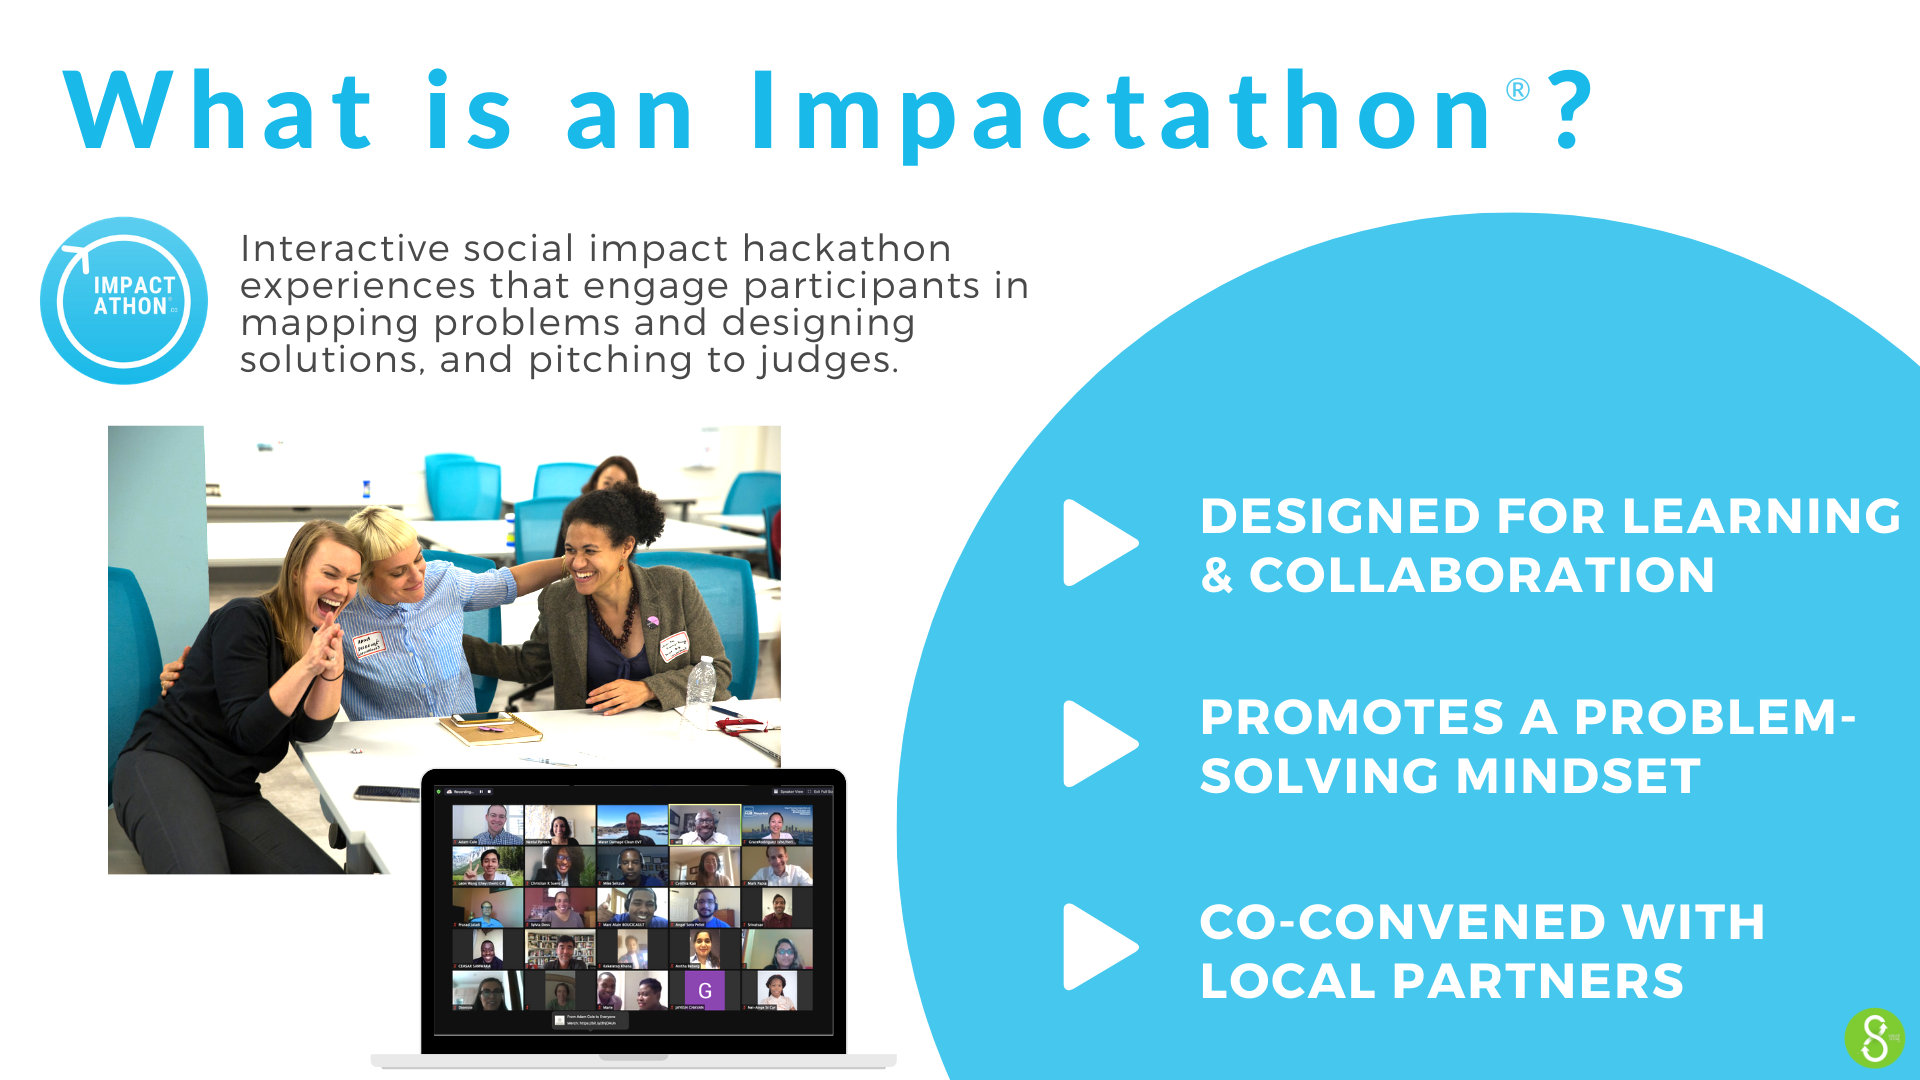 What is an Impactathon? Interactive social impact hackathon experiences that engage participants in mapping problems and designing solutions, and pitching to judges. Designed for learning & Collaboration. PROMOTES A problem-solving mindset. co-convened with local partners